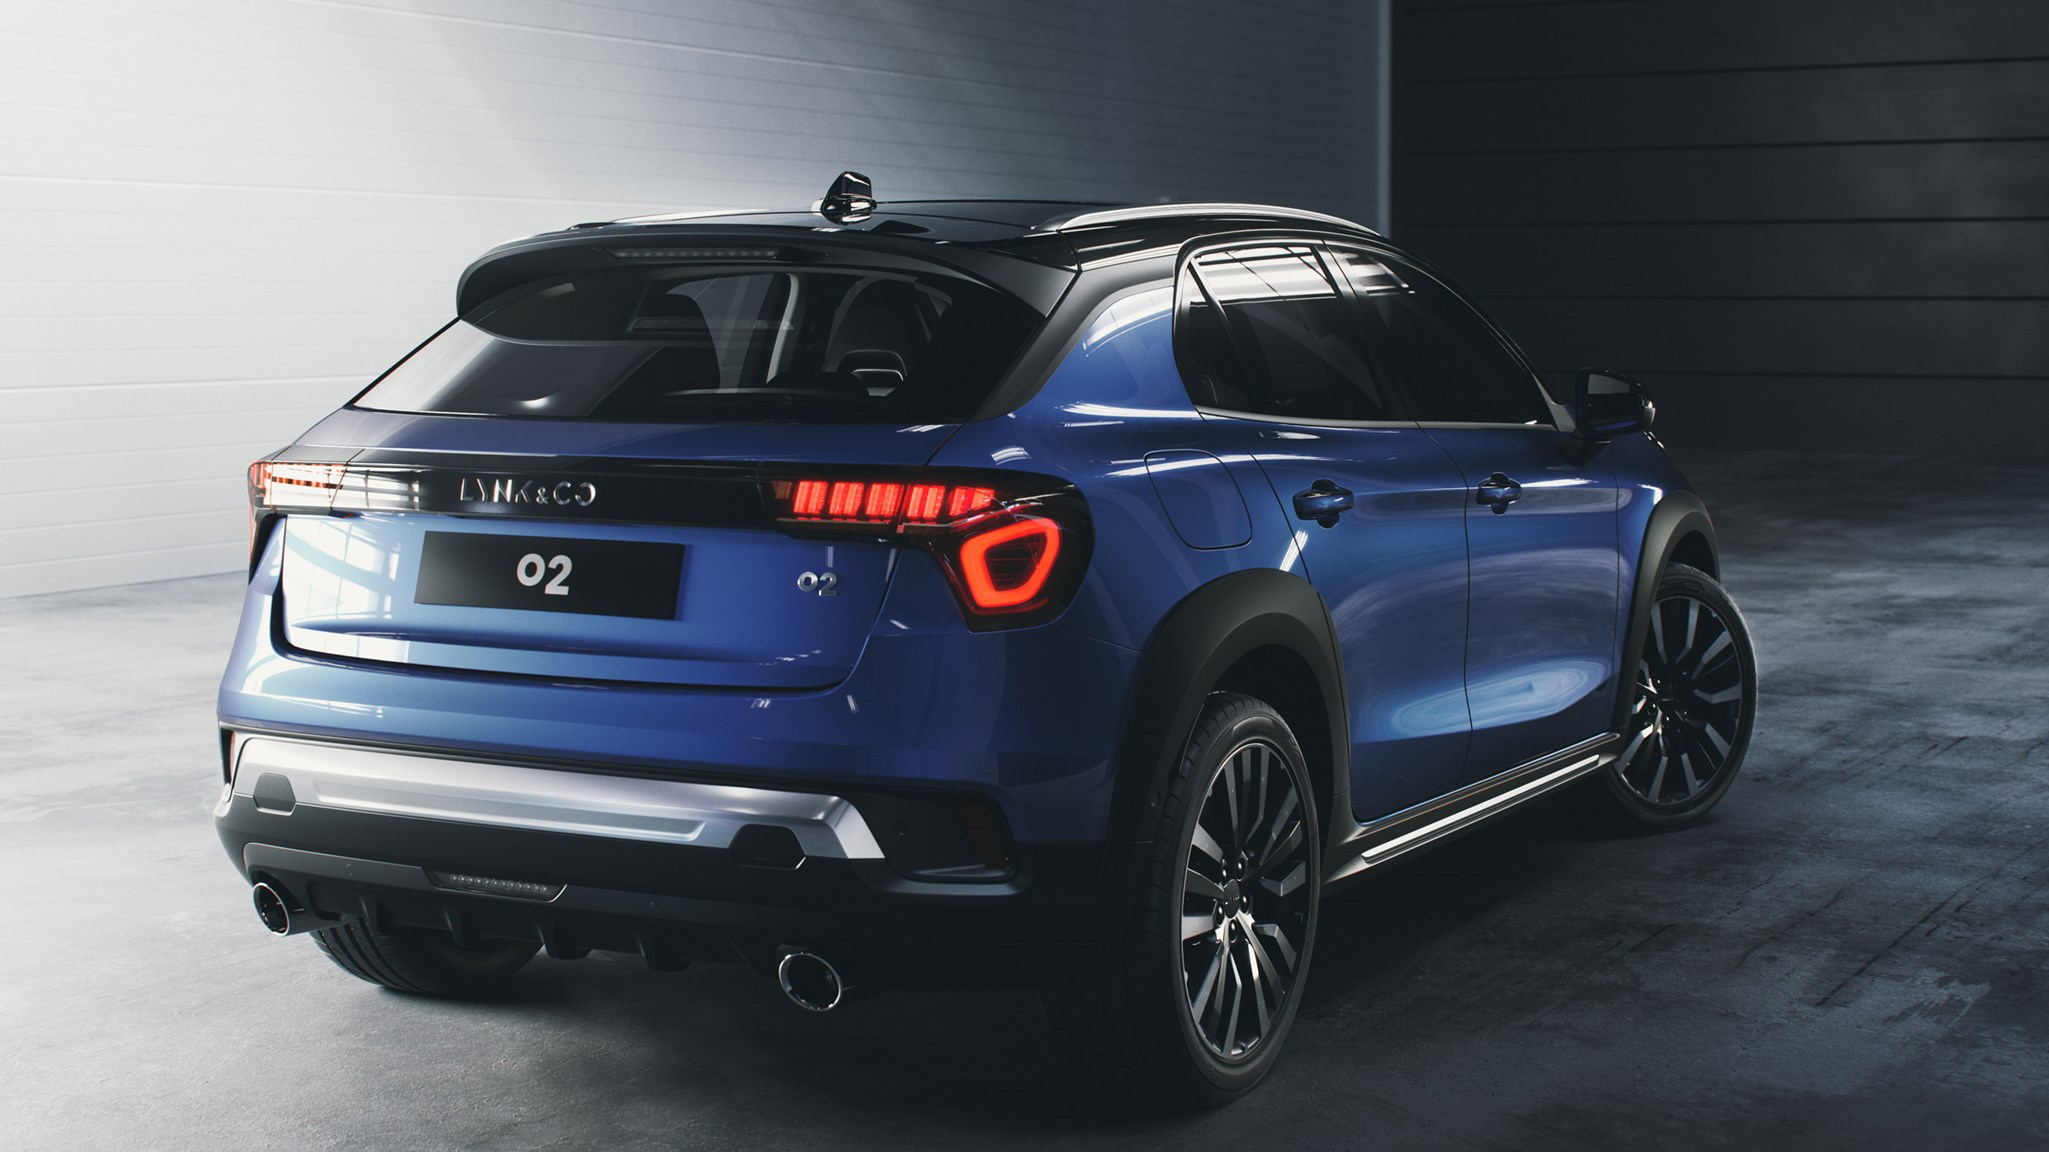 Tesla 2019 >> Lynk & Co 02: Geely's other marque reveals new SUV | CAR Magazine